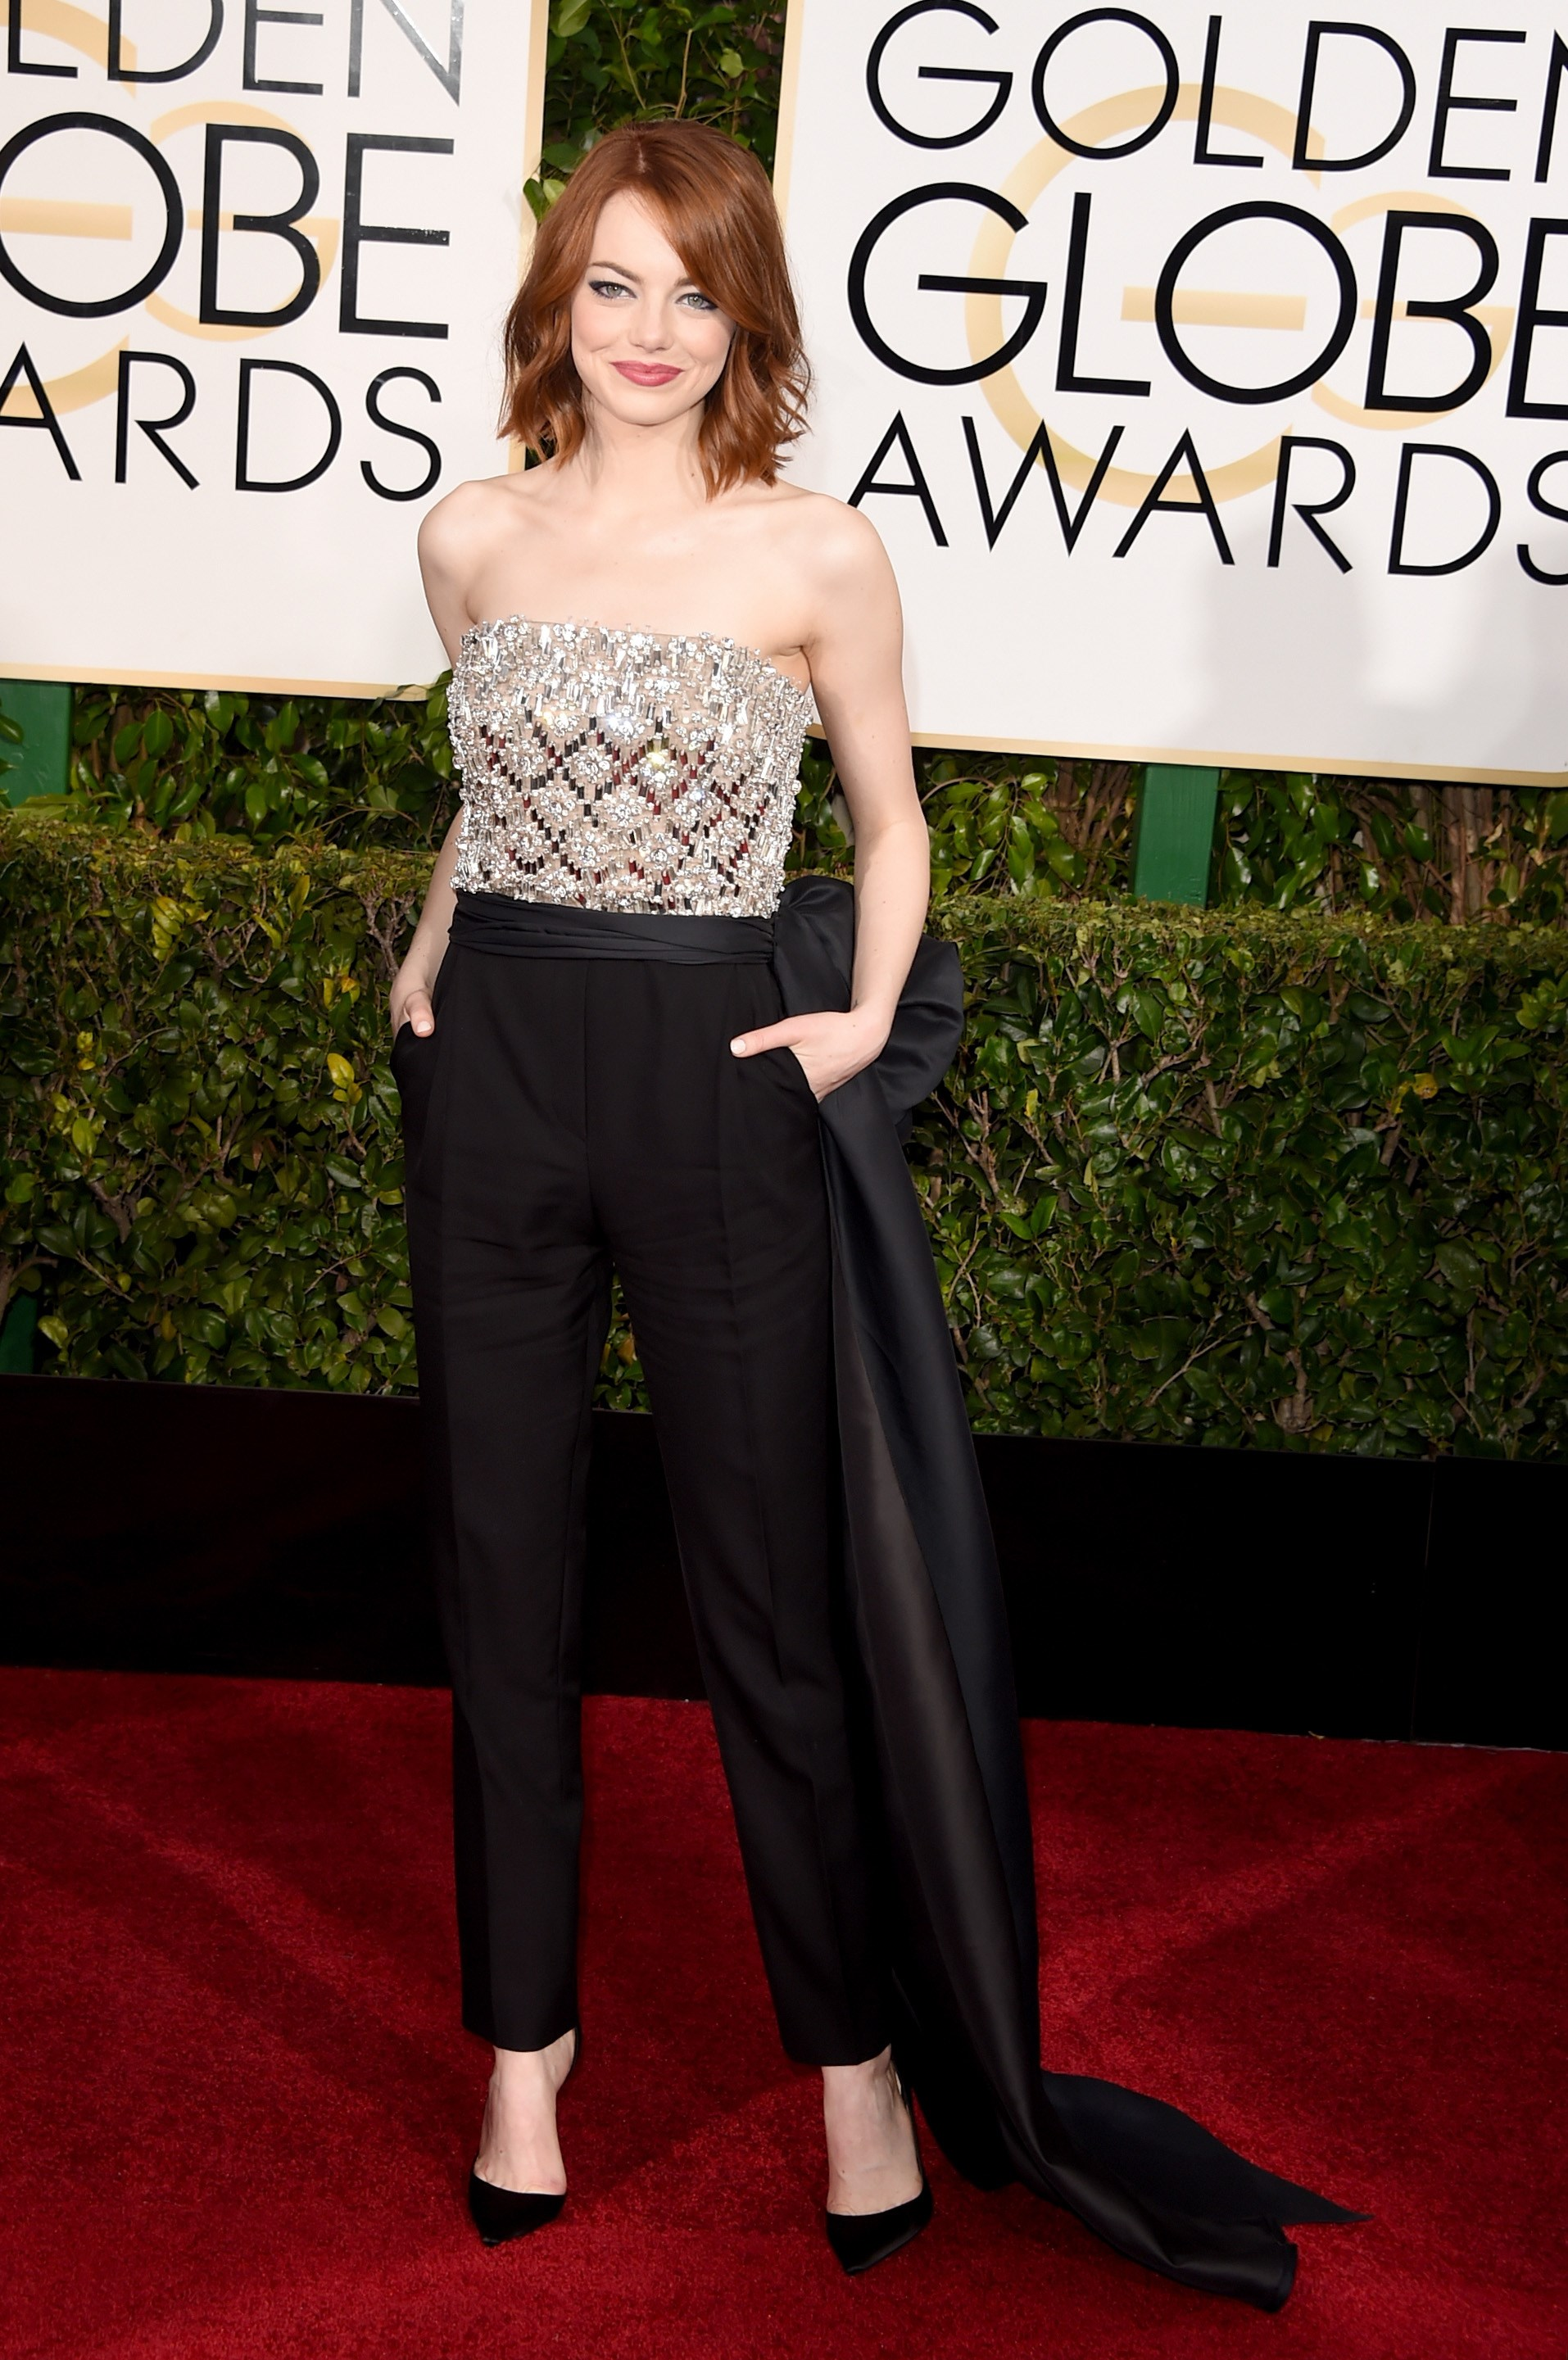 Emma Stone wearing Lanvin and Christian Louboutin shoes